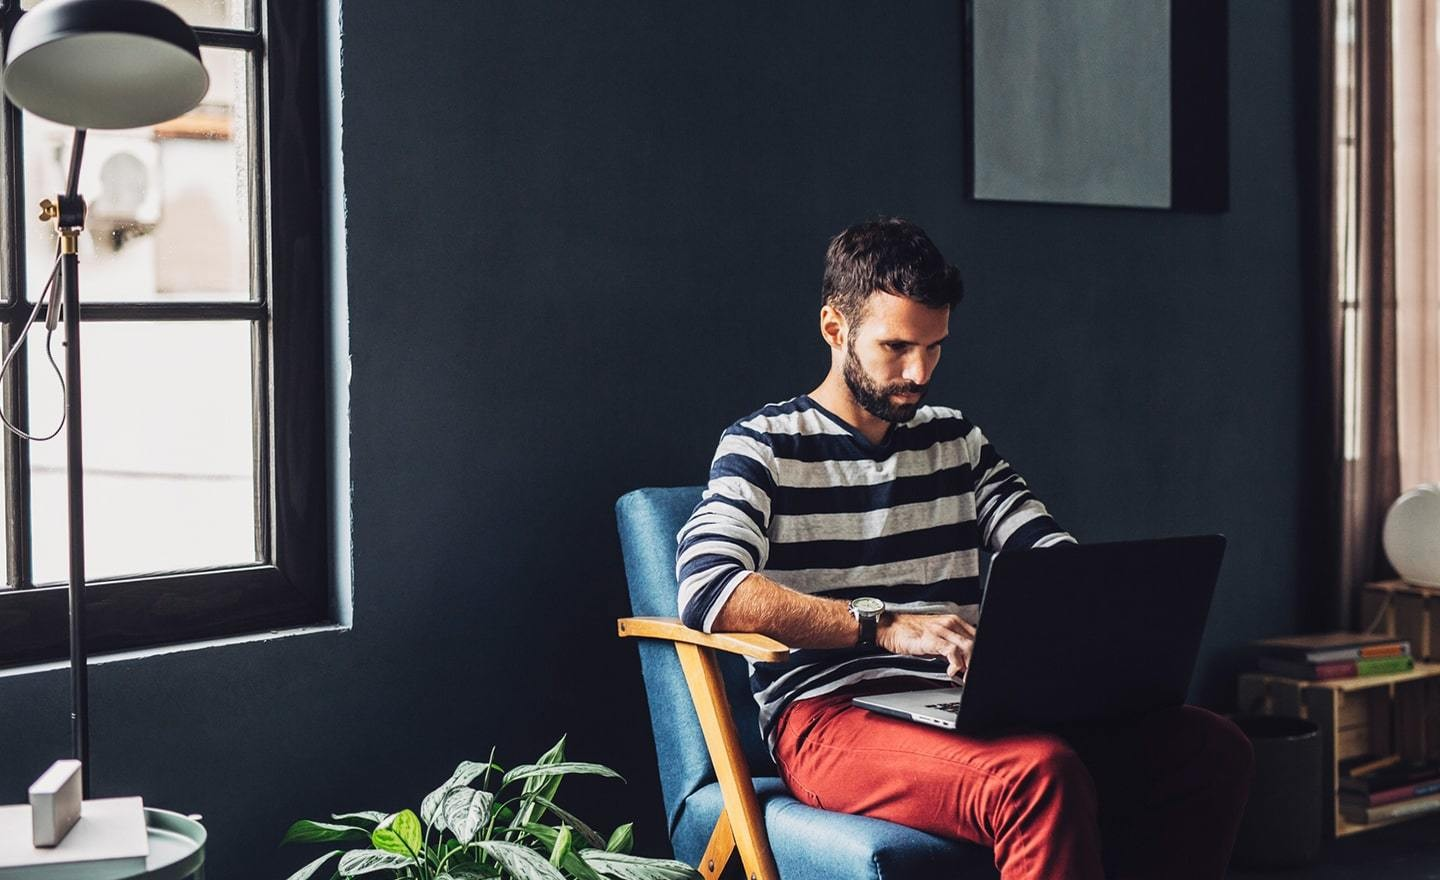 Man in red pants working on laptop